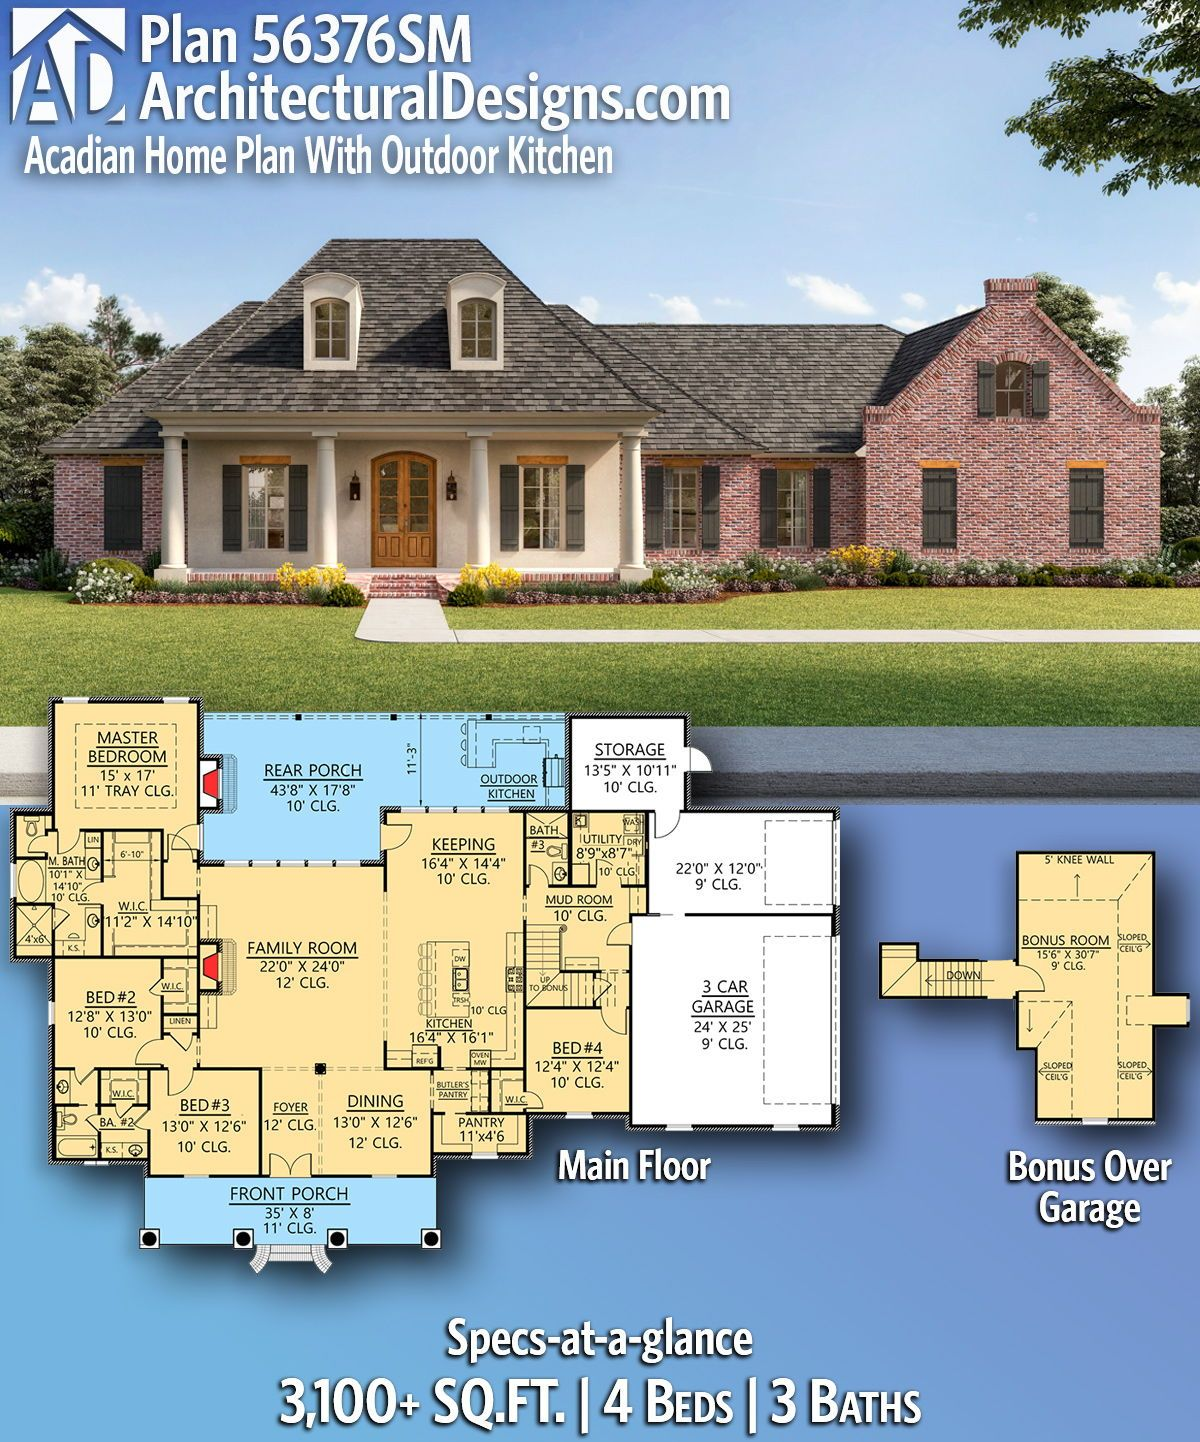 Plan 56376sm Acadian Home Plan With Outdoor Kitchen Acadian Homes House Plans French Country House Plans